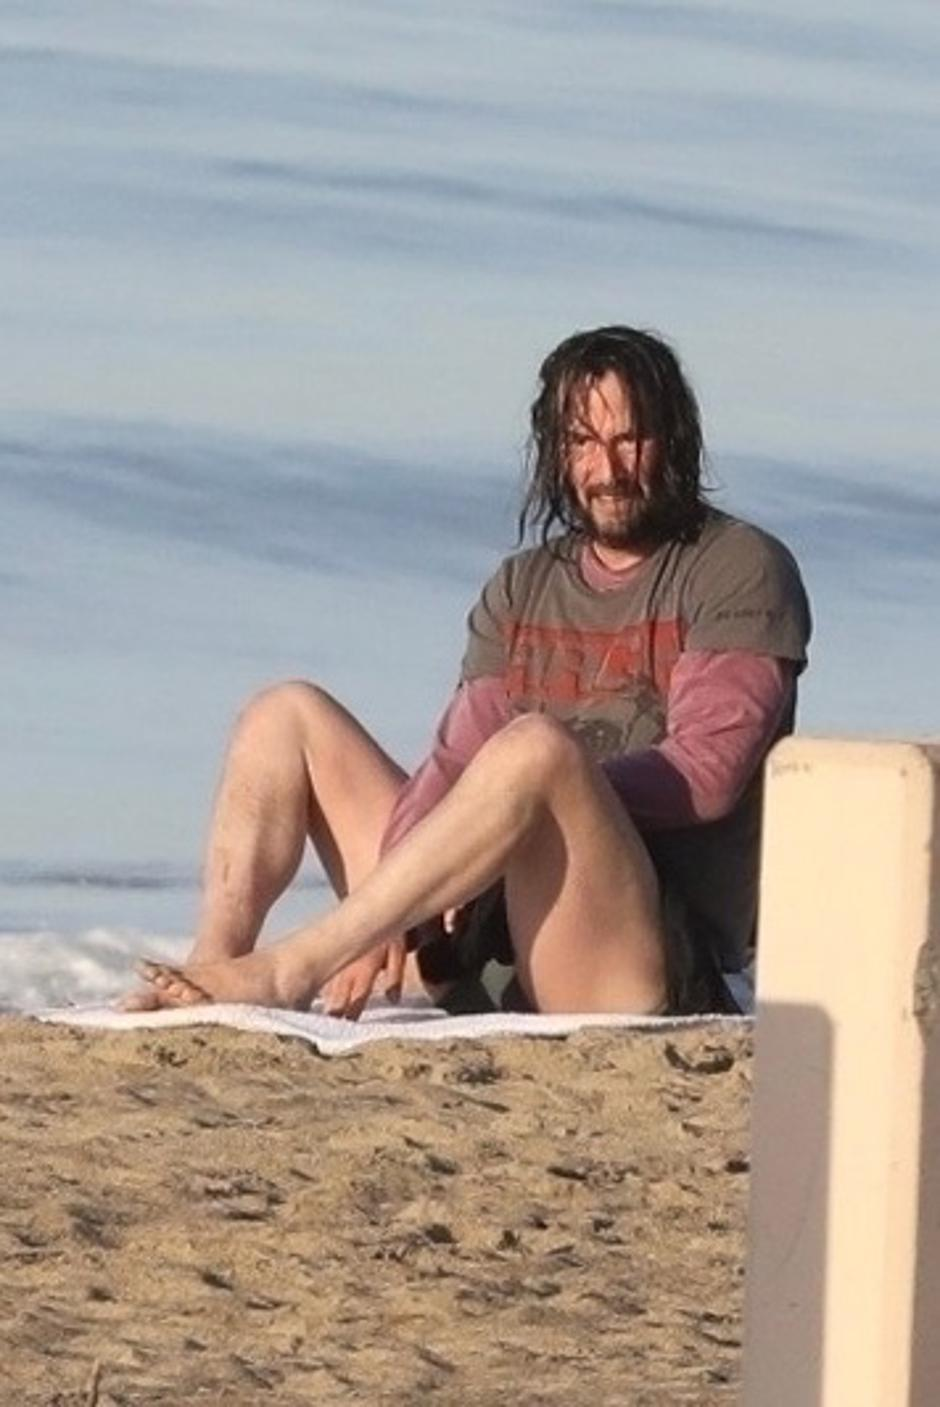 *PREMIUM-EXCLUSIVE* Keanu Reeves flashes his bare butt while drying off after a dip in the ocean | Autor: RMBI